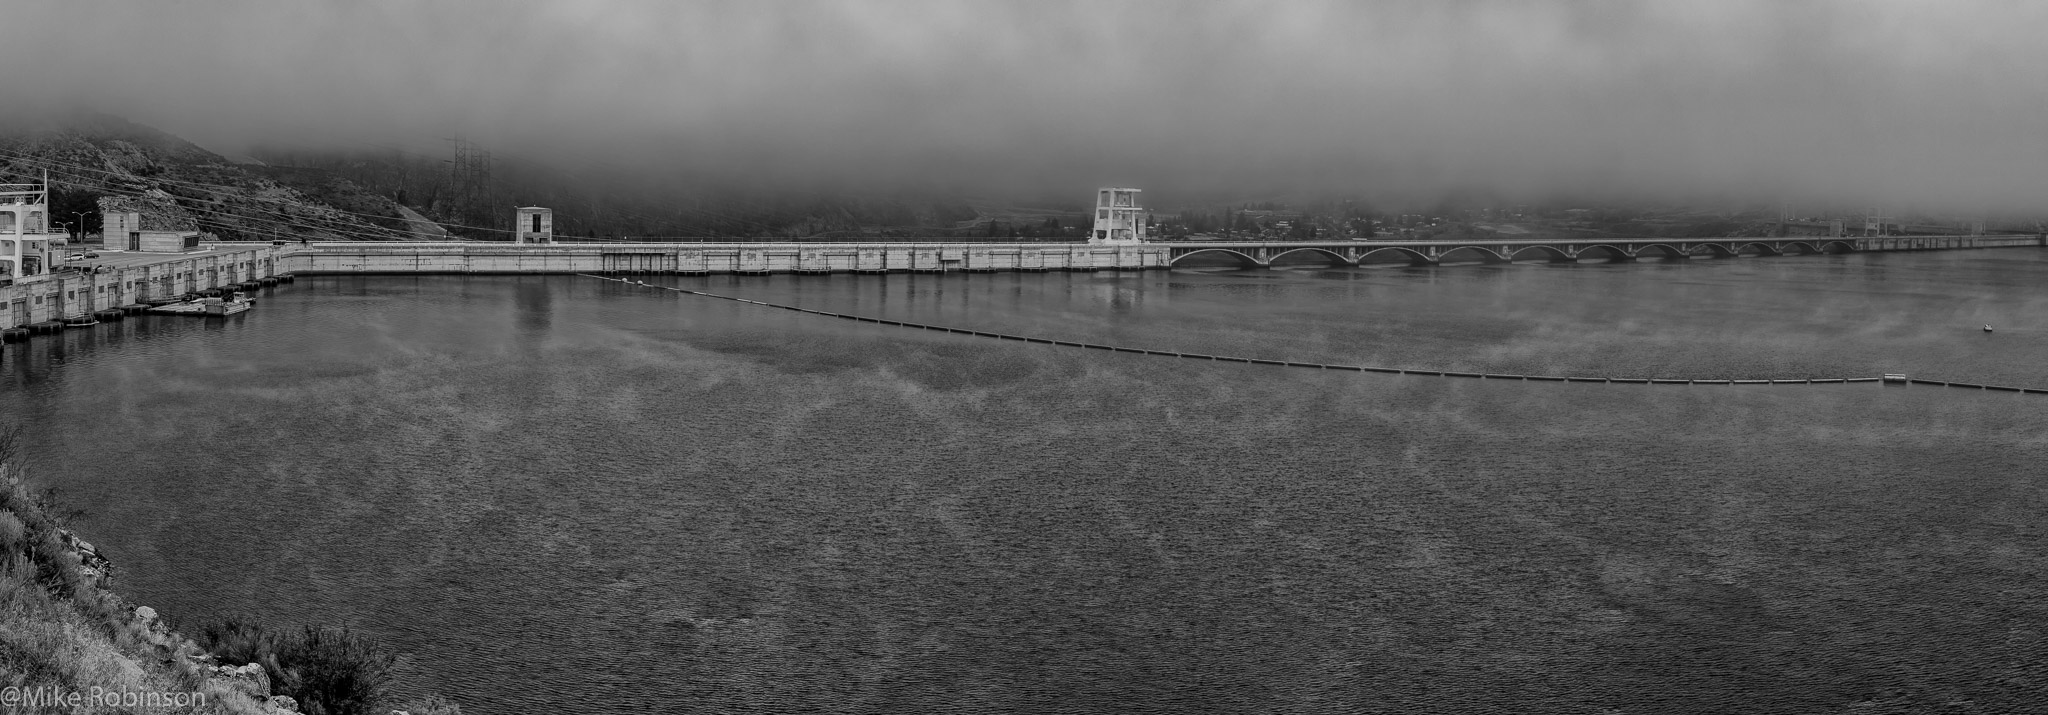 Grand Coulee Cloudy Day.jpg